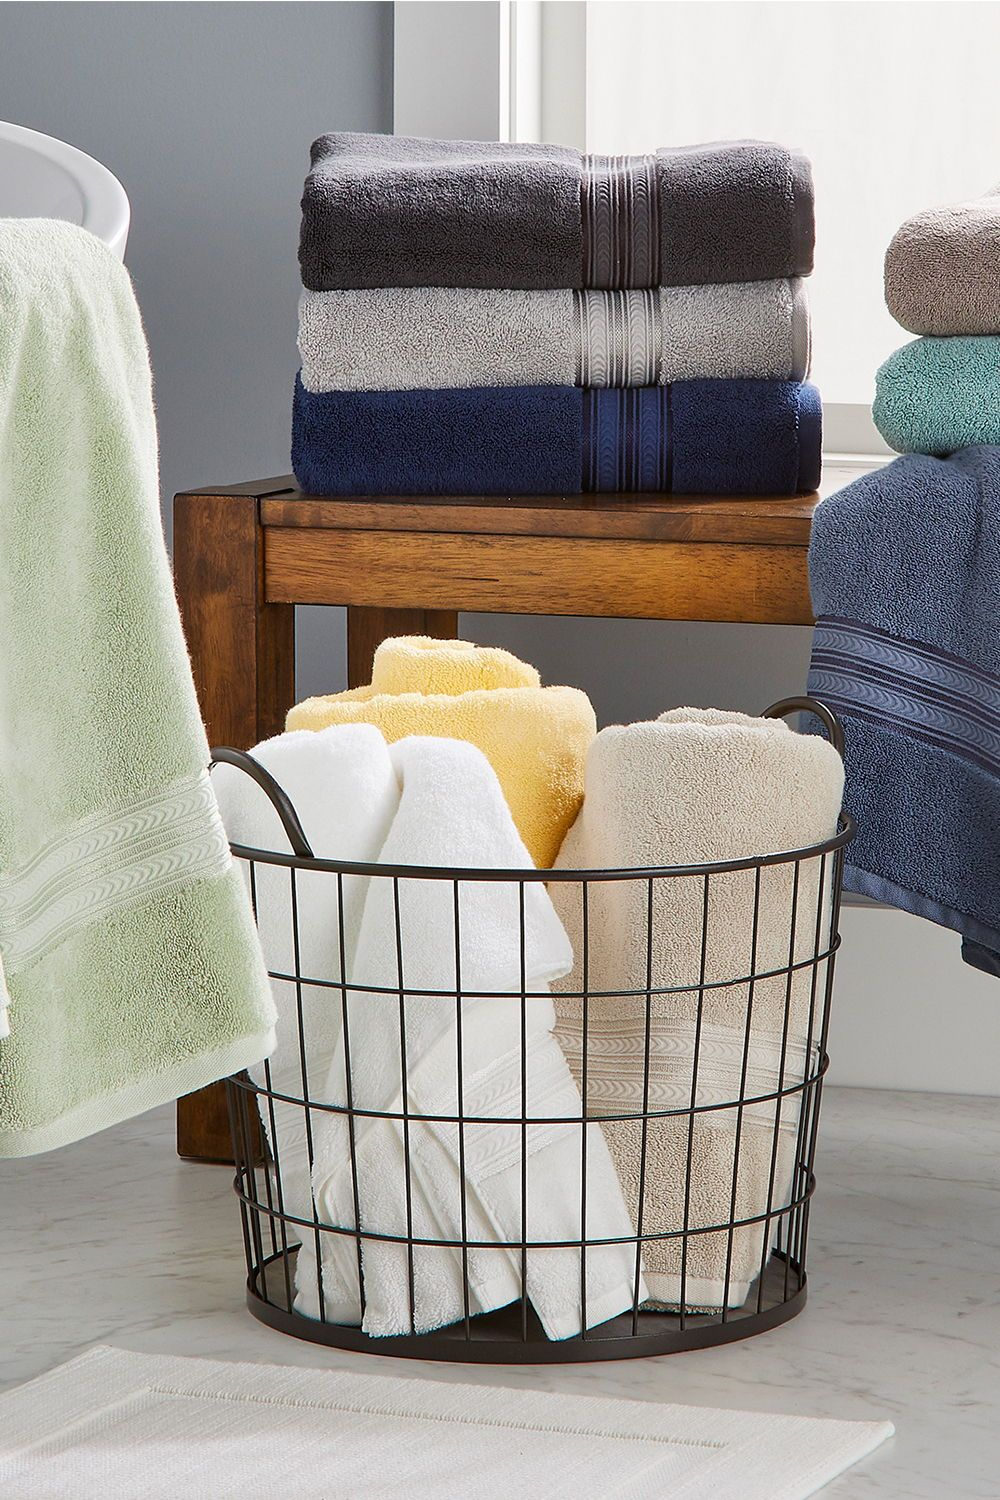 Home In 2020 With Images Plush Bath Towel